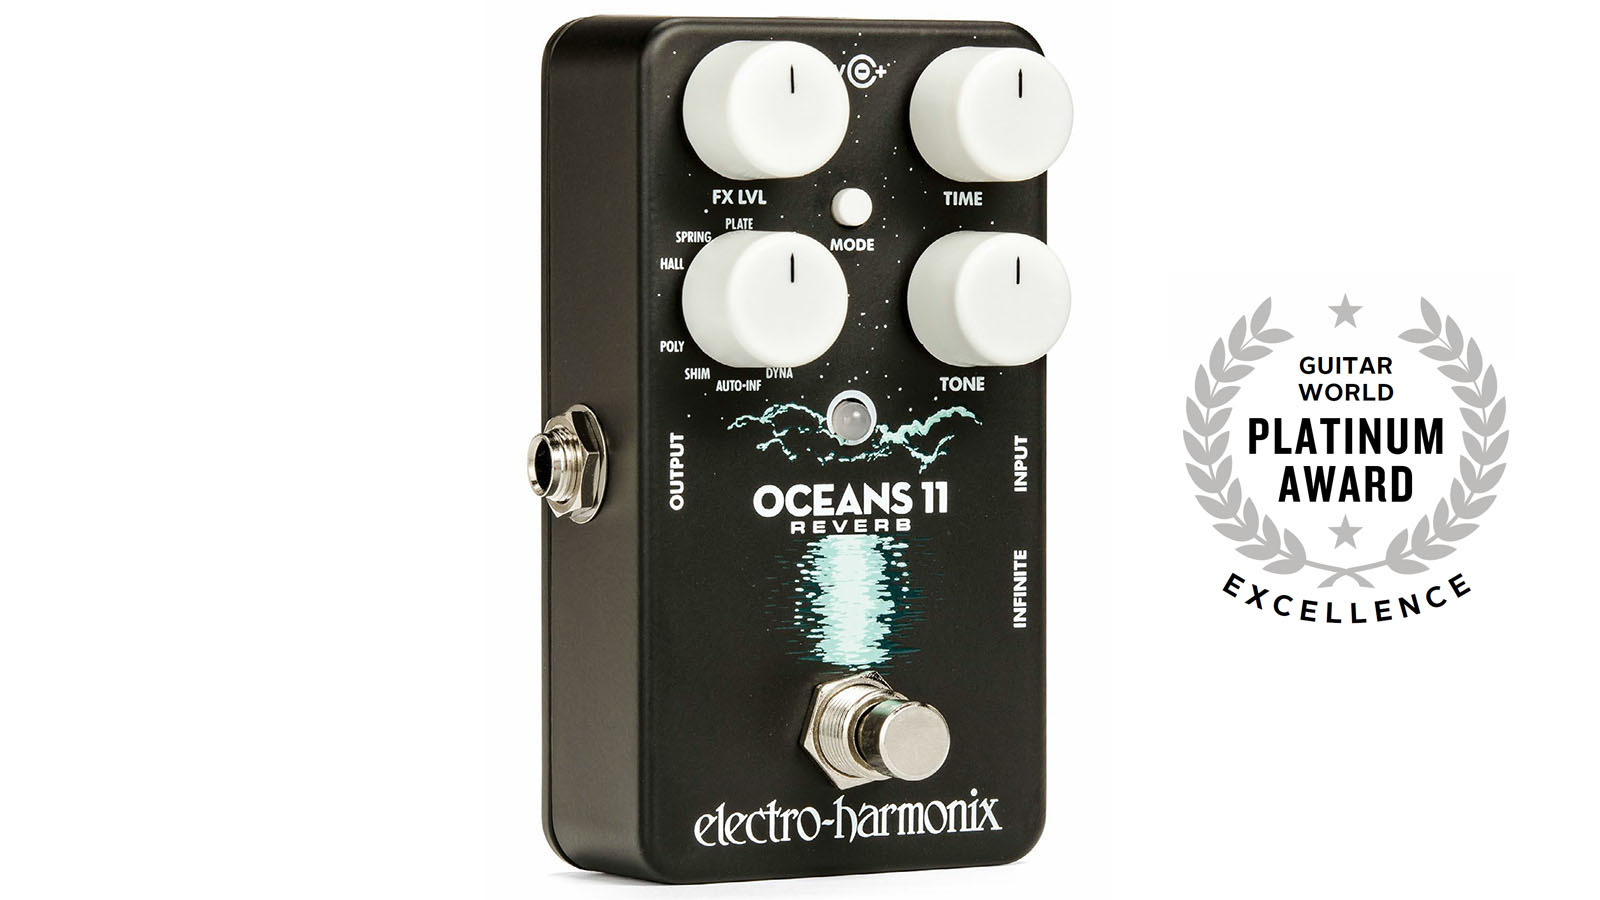 Review Electro Harmonix Oceans 11 Reverb Guitarworld